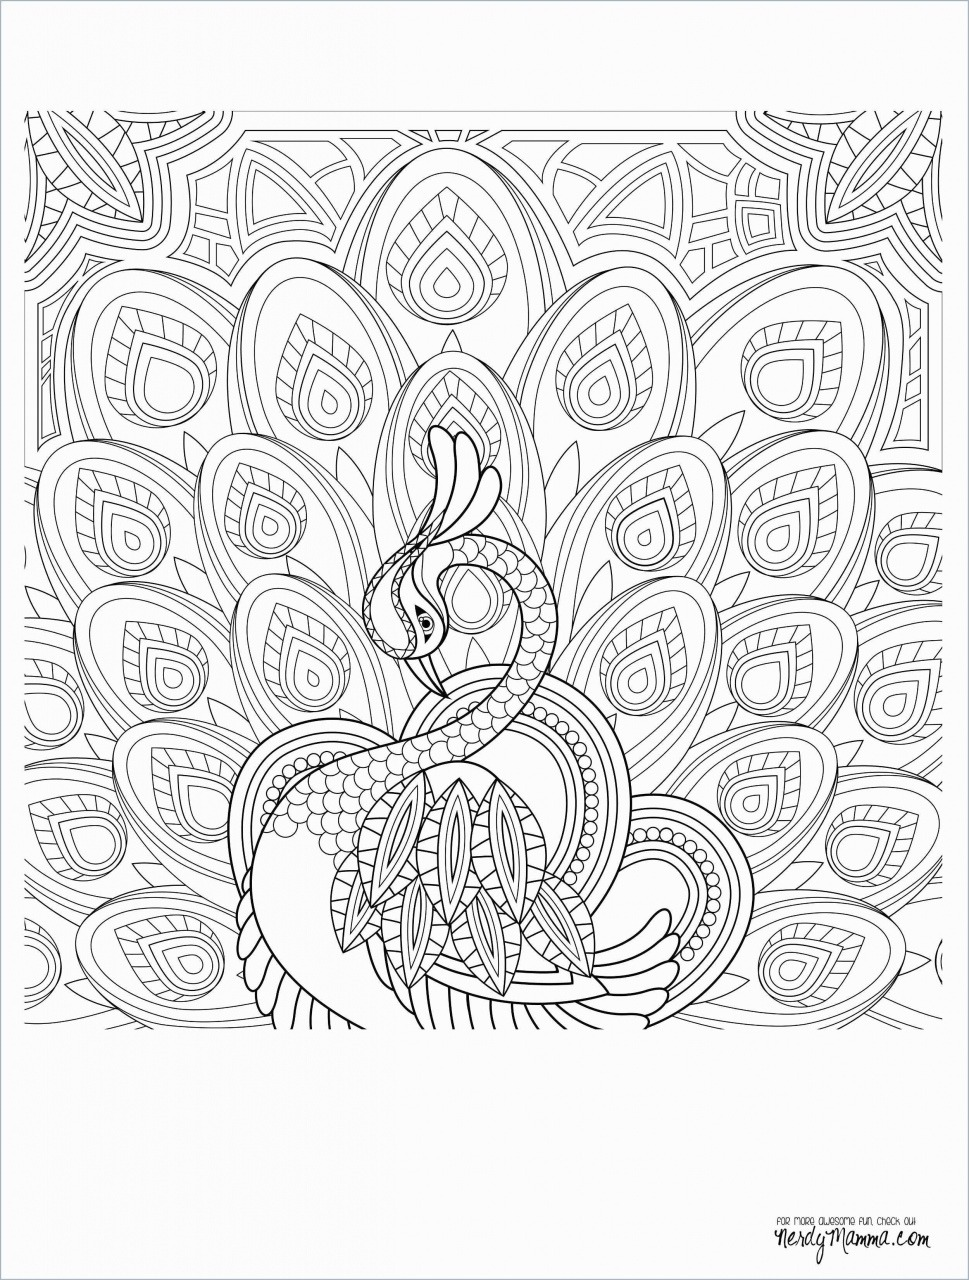 Airplane Coloring Pages Airplane Coloring Book Cool Gallery 37